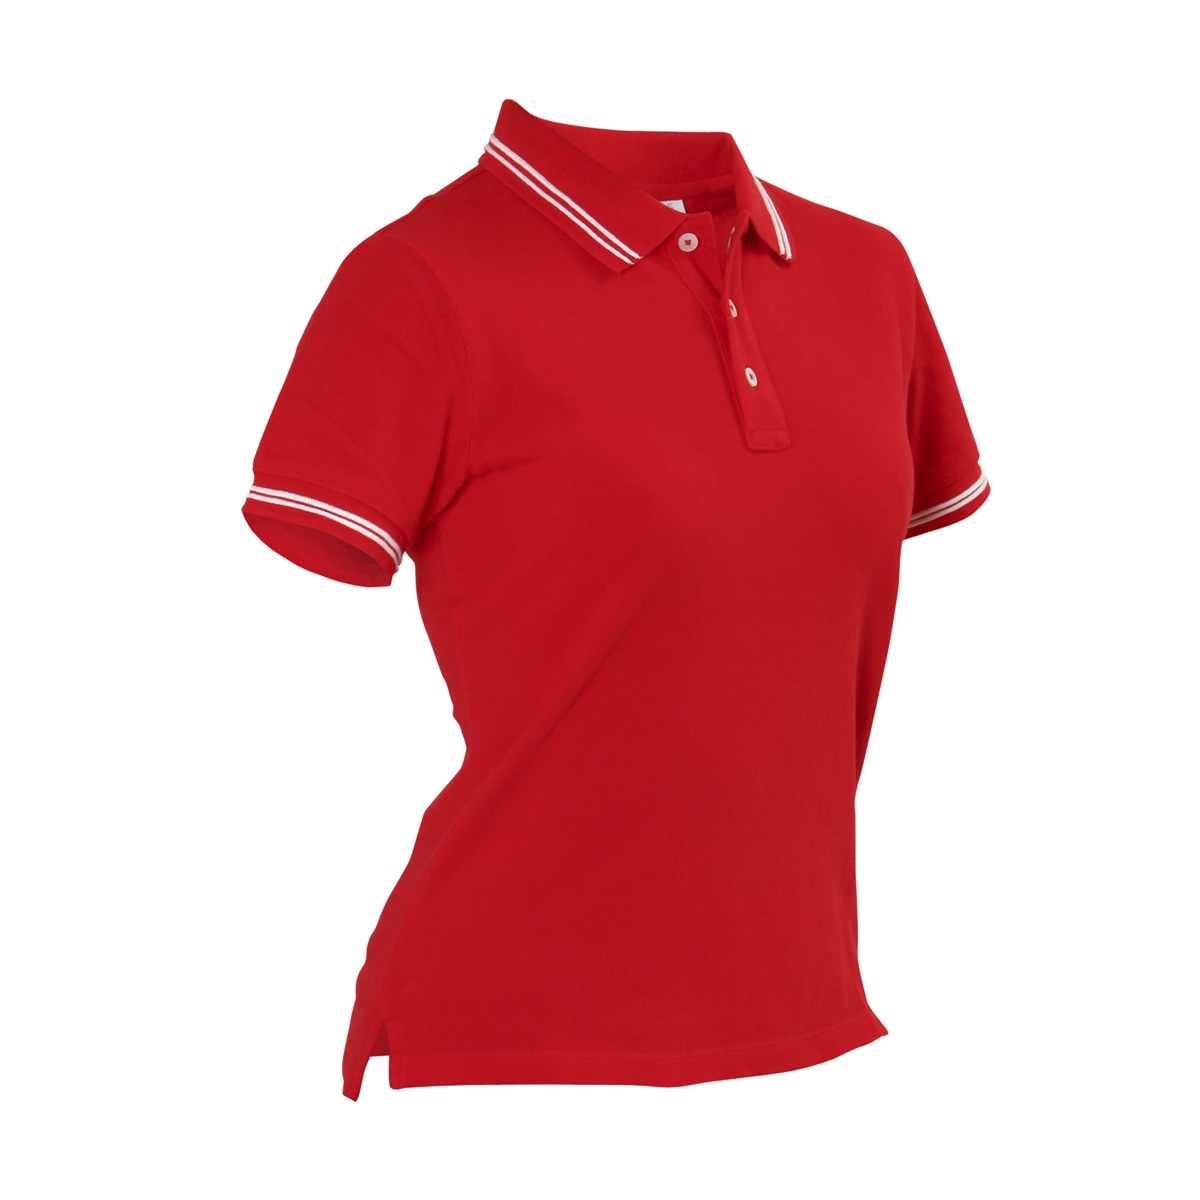 Polo Regata - woman - red